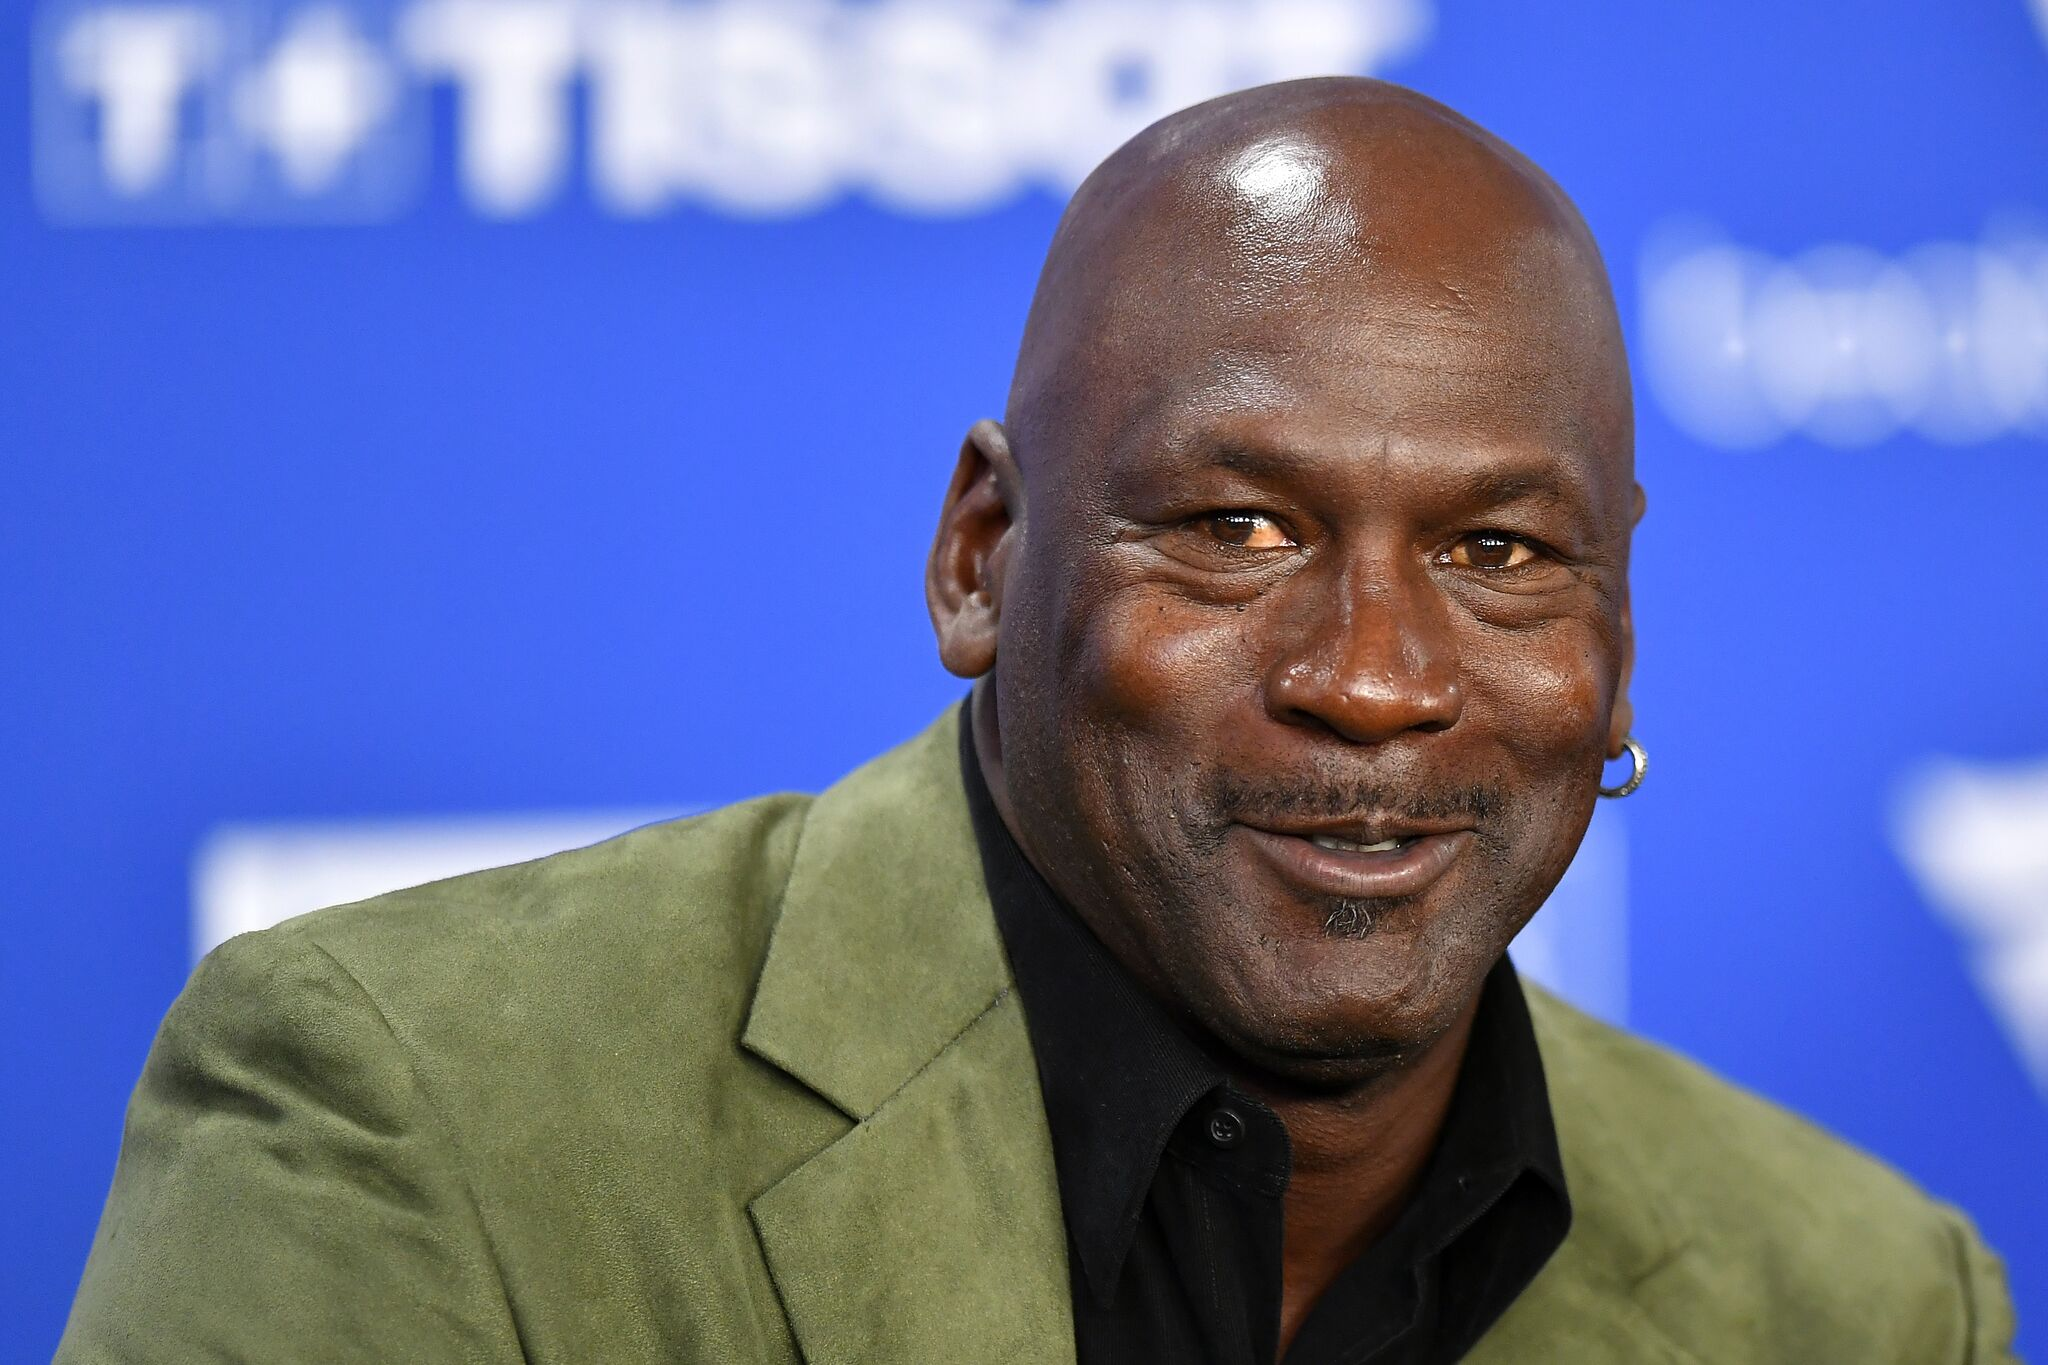 Michael Jordan at a press conference on January 24, 2020 in Paris, France | Photo: Getty Images